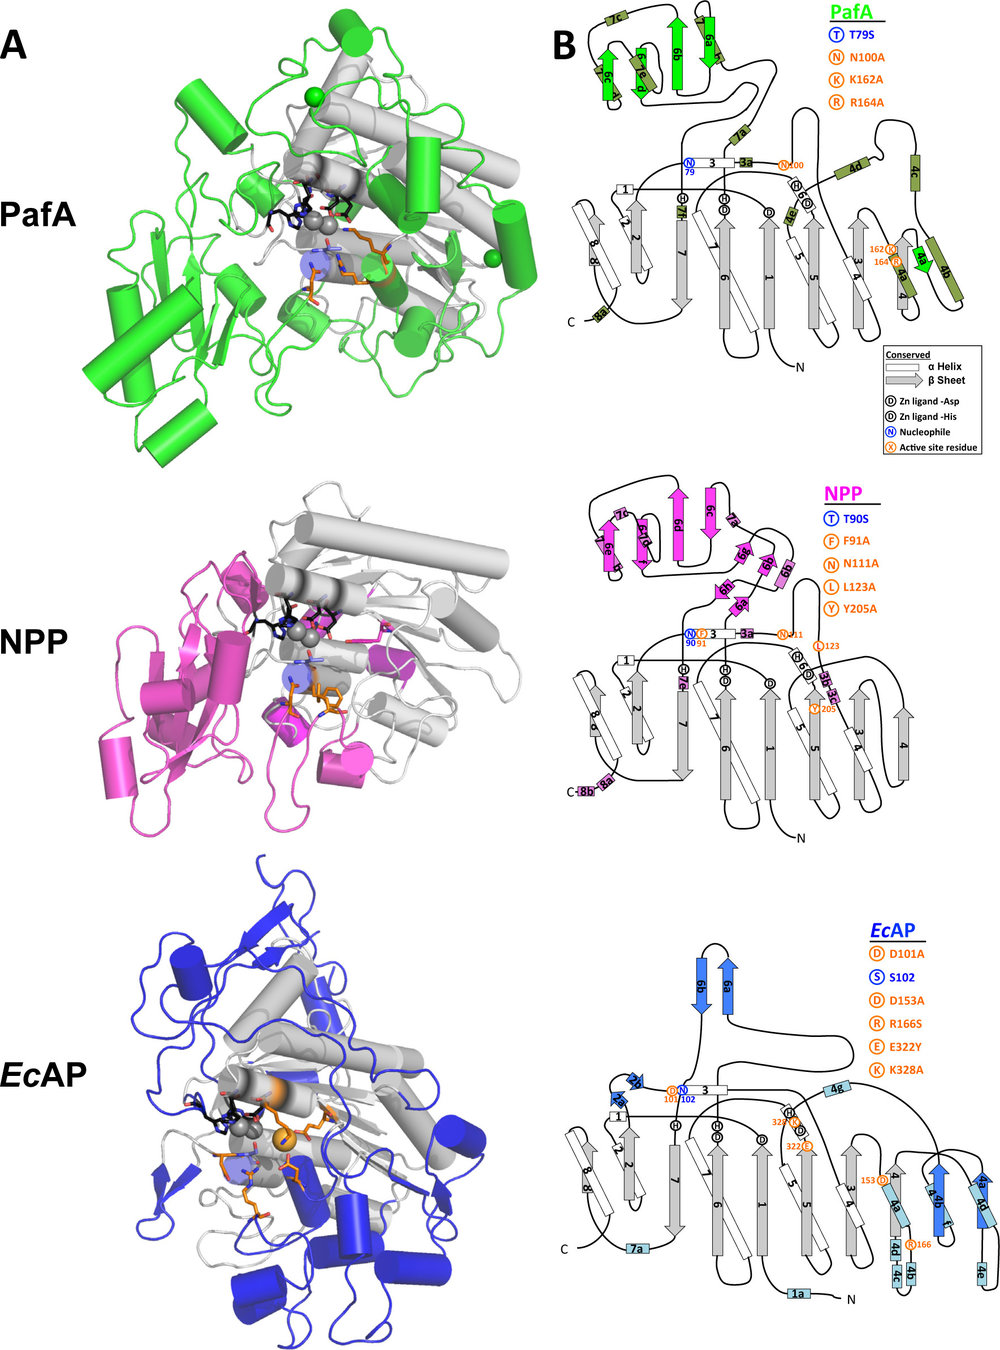 Global structure and active site of PafA, NPP, and EcAP.